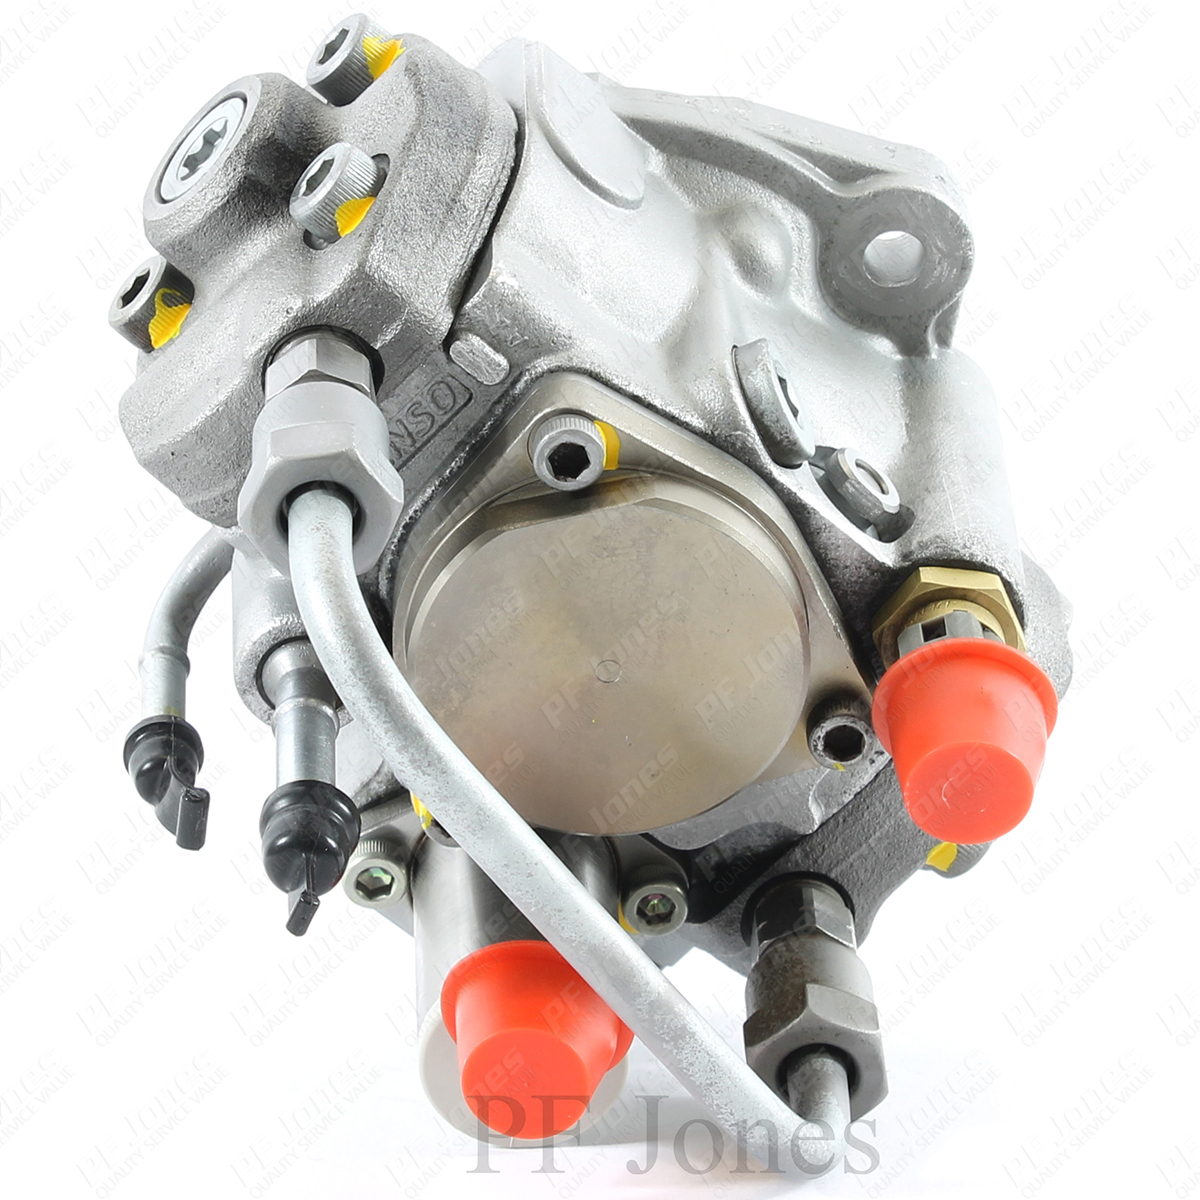 Toyota Corolla 2003 Onwards Reconditioned Denso Diesel Fuel Pump 294000-0170